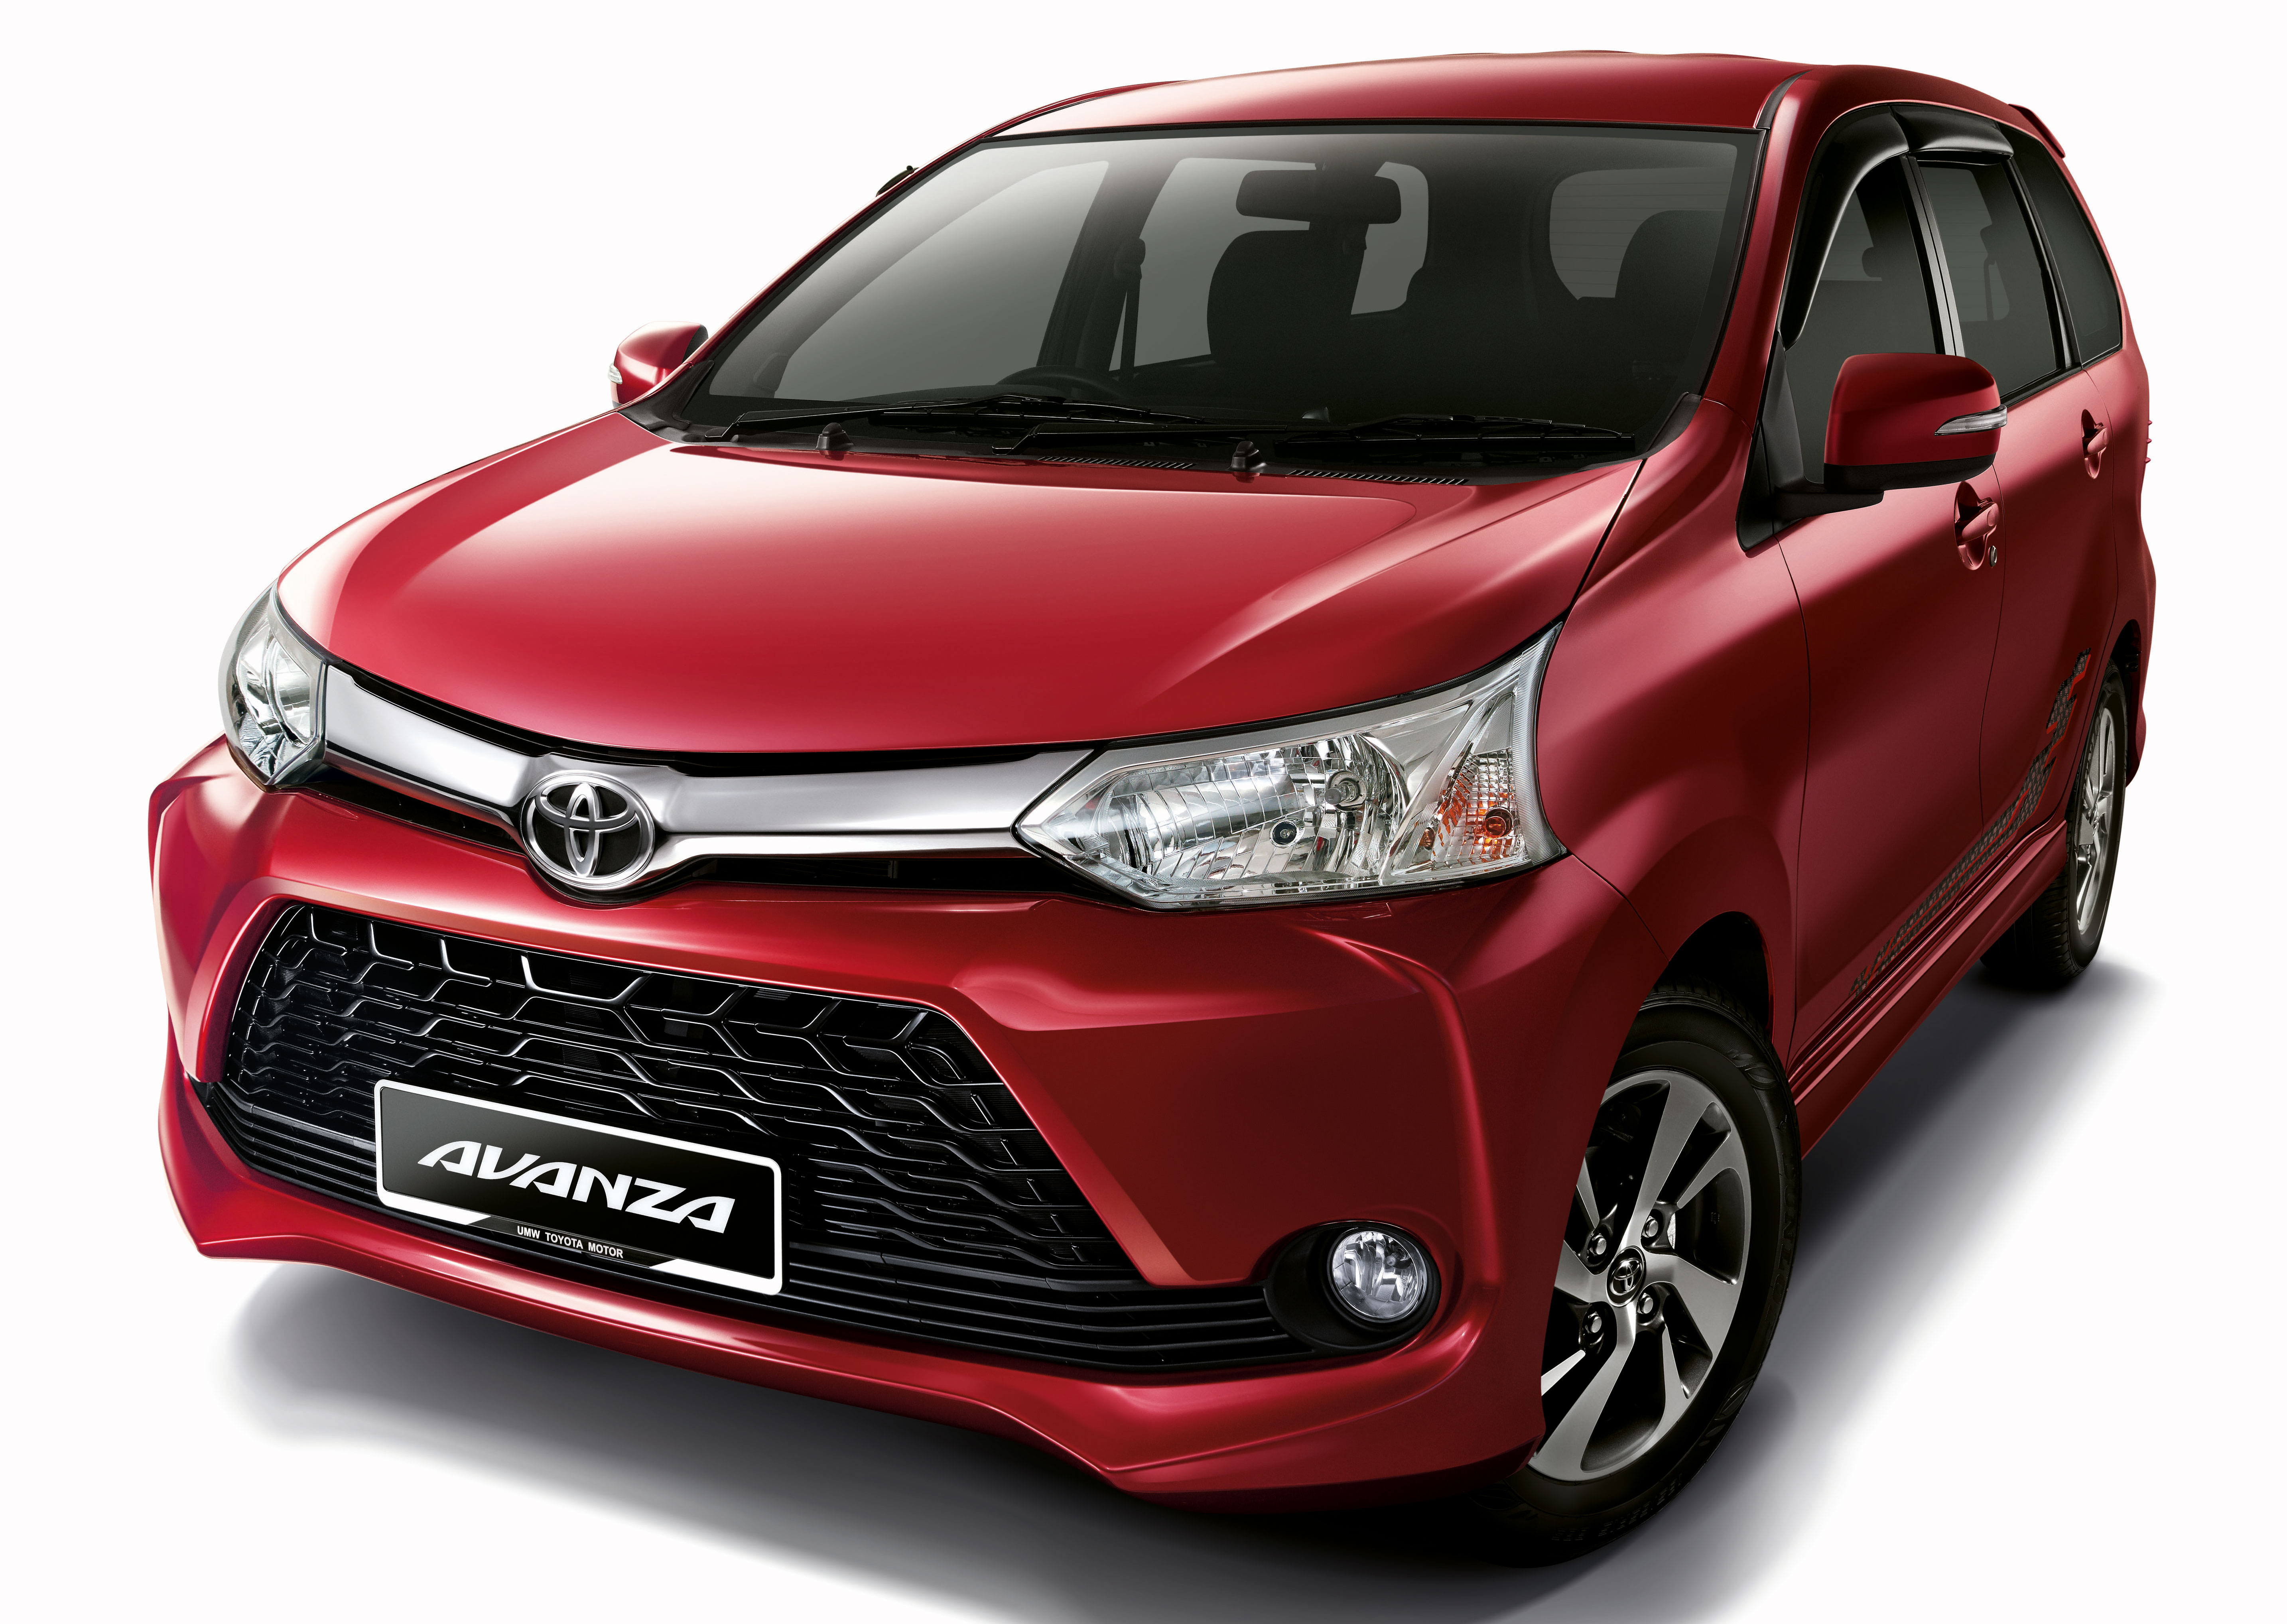 GALLERY: Toyota Avanza Facelift Now On Sale In M'sia Image